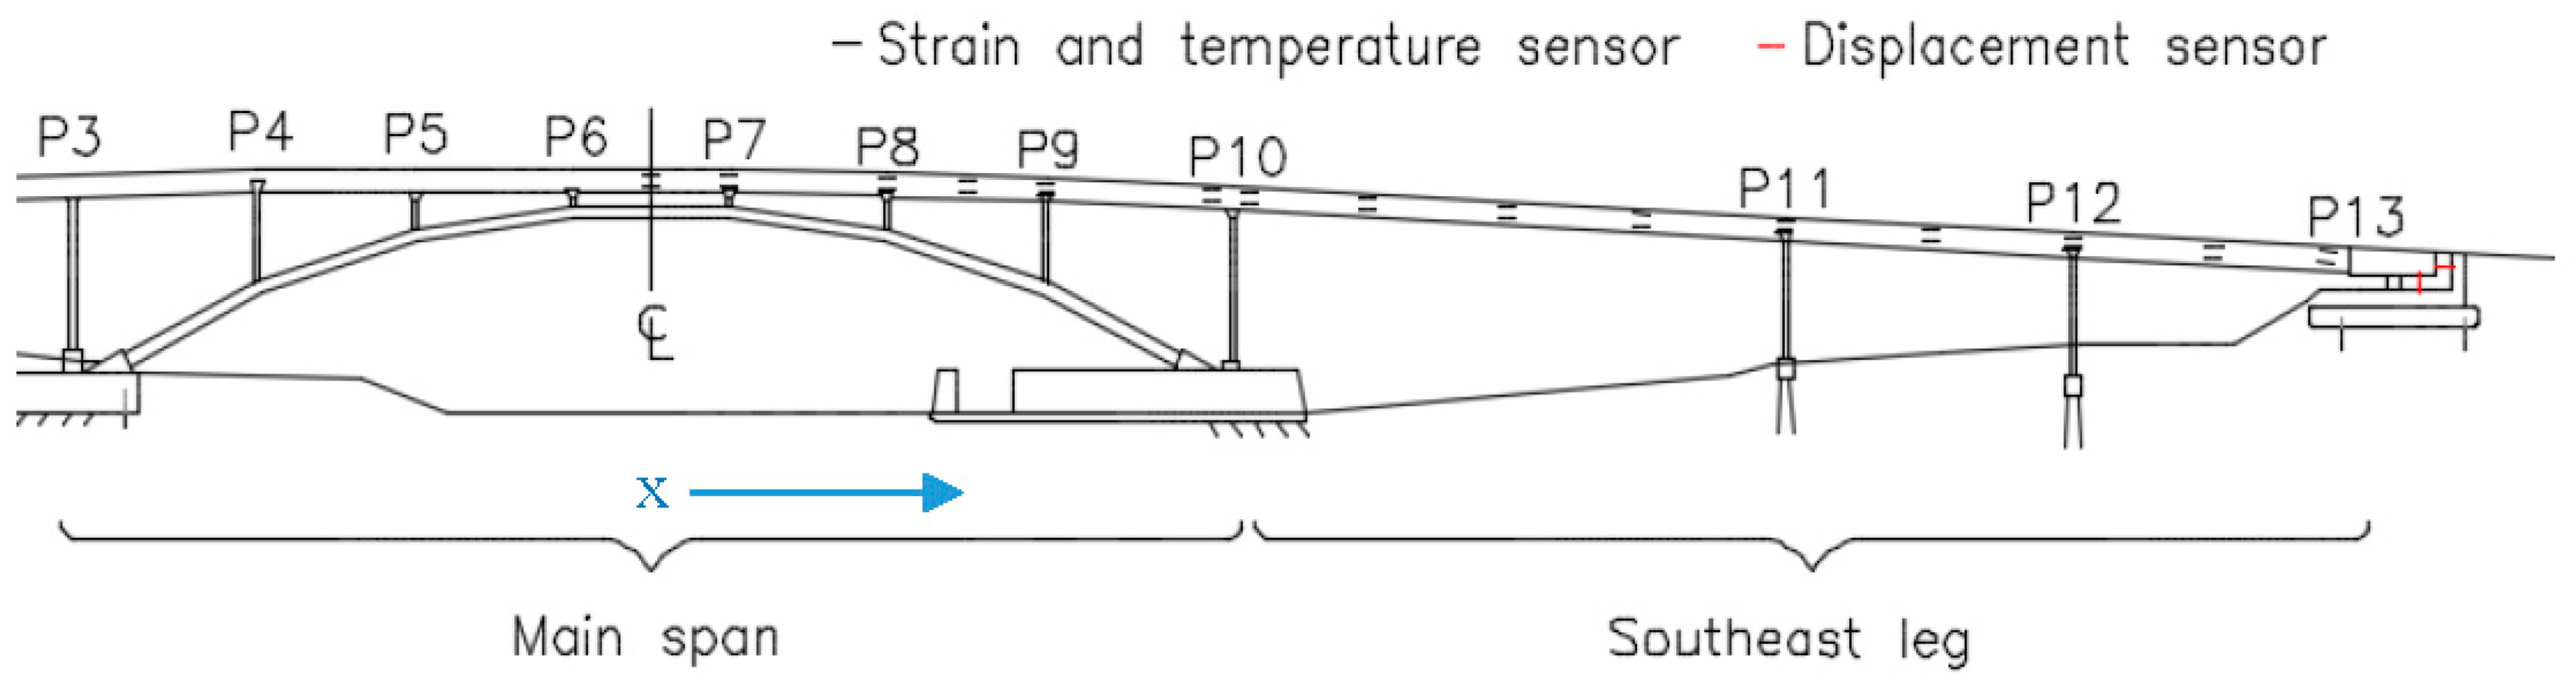 Sensors Free Full Text Identifying Time Periods Of Minimal Here S A Simple Rain Detector Circuit It Uses Sensor Made Small 18 00734 G001